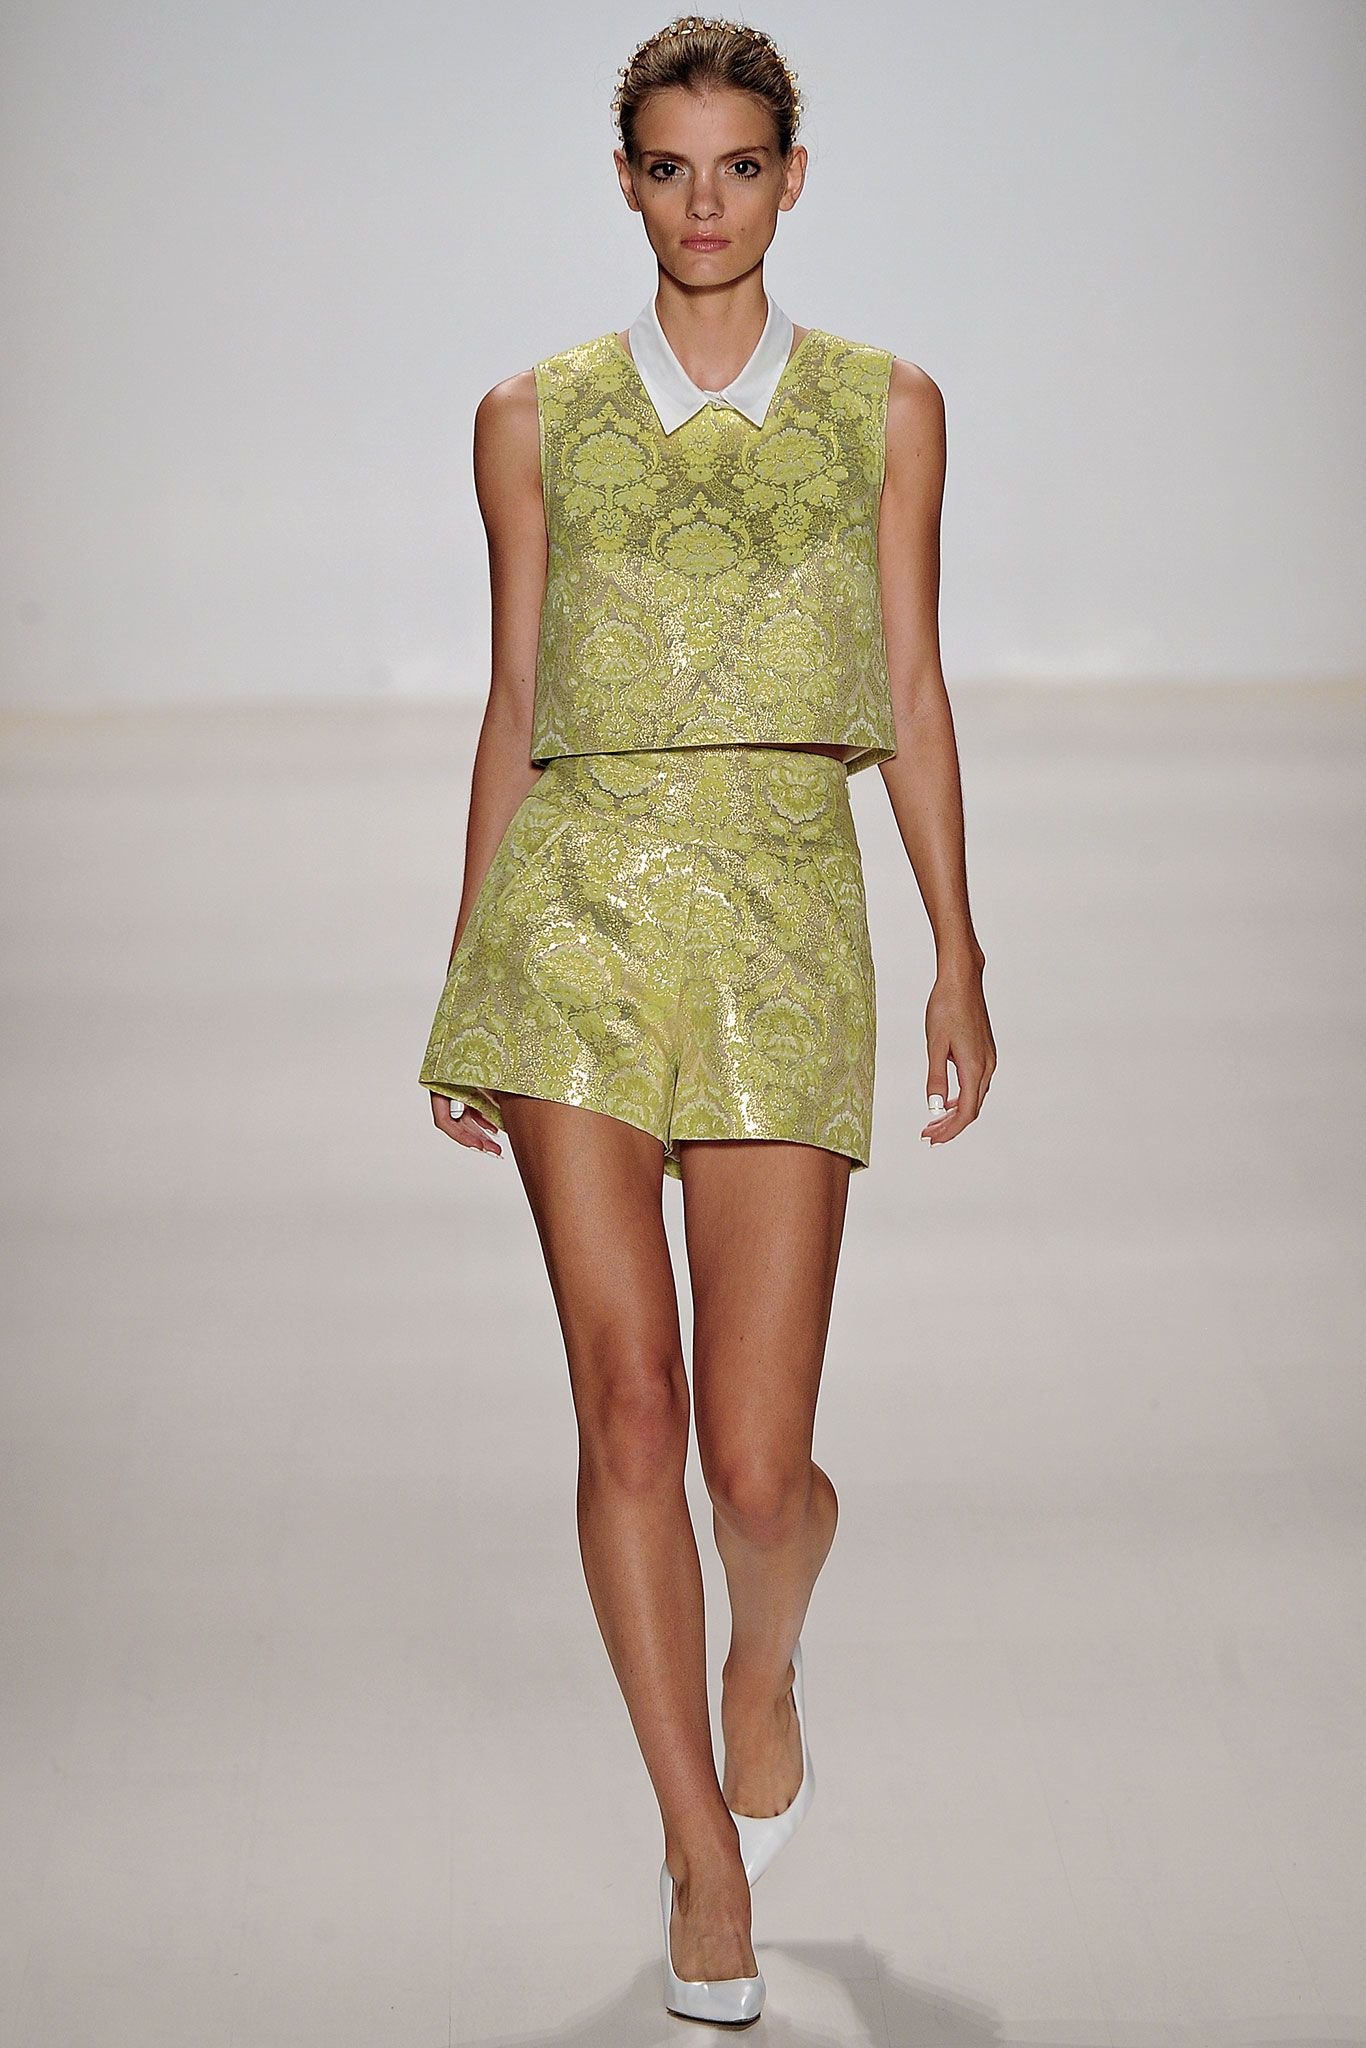 Erin Fetherston SpringSummer 2015 Collection – New York Fashion Week forecast